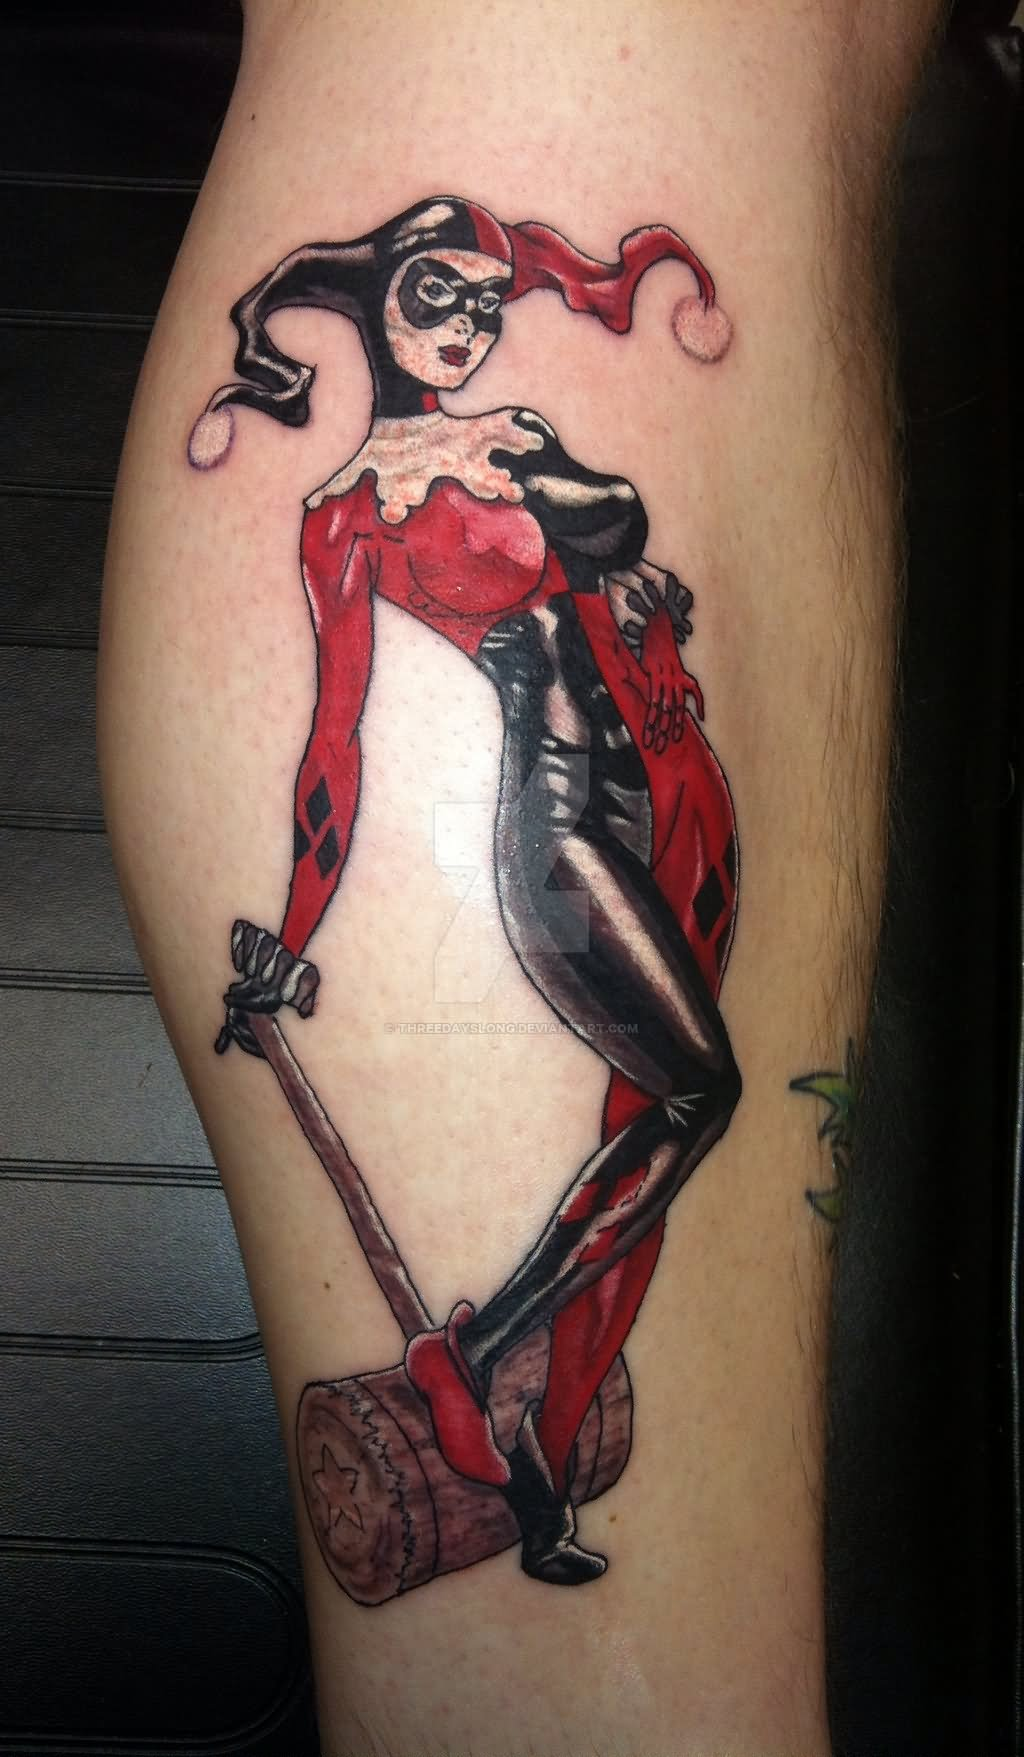 Black ink tattoos for girls - Awesome Harley Quinn Tattoo On Arm Sleeve By Threedayslong